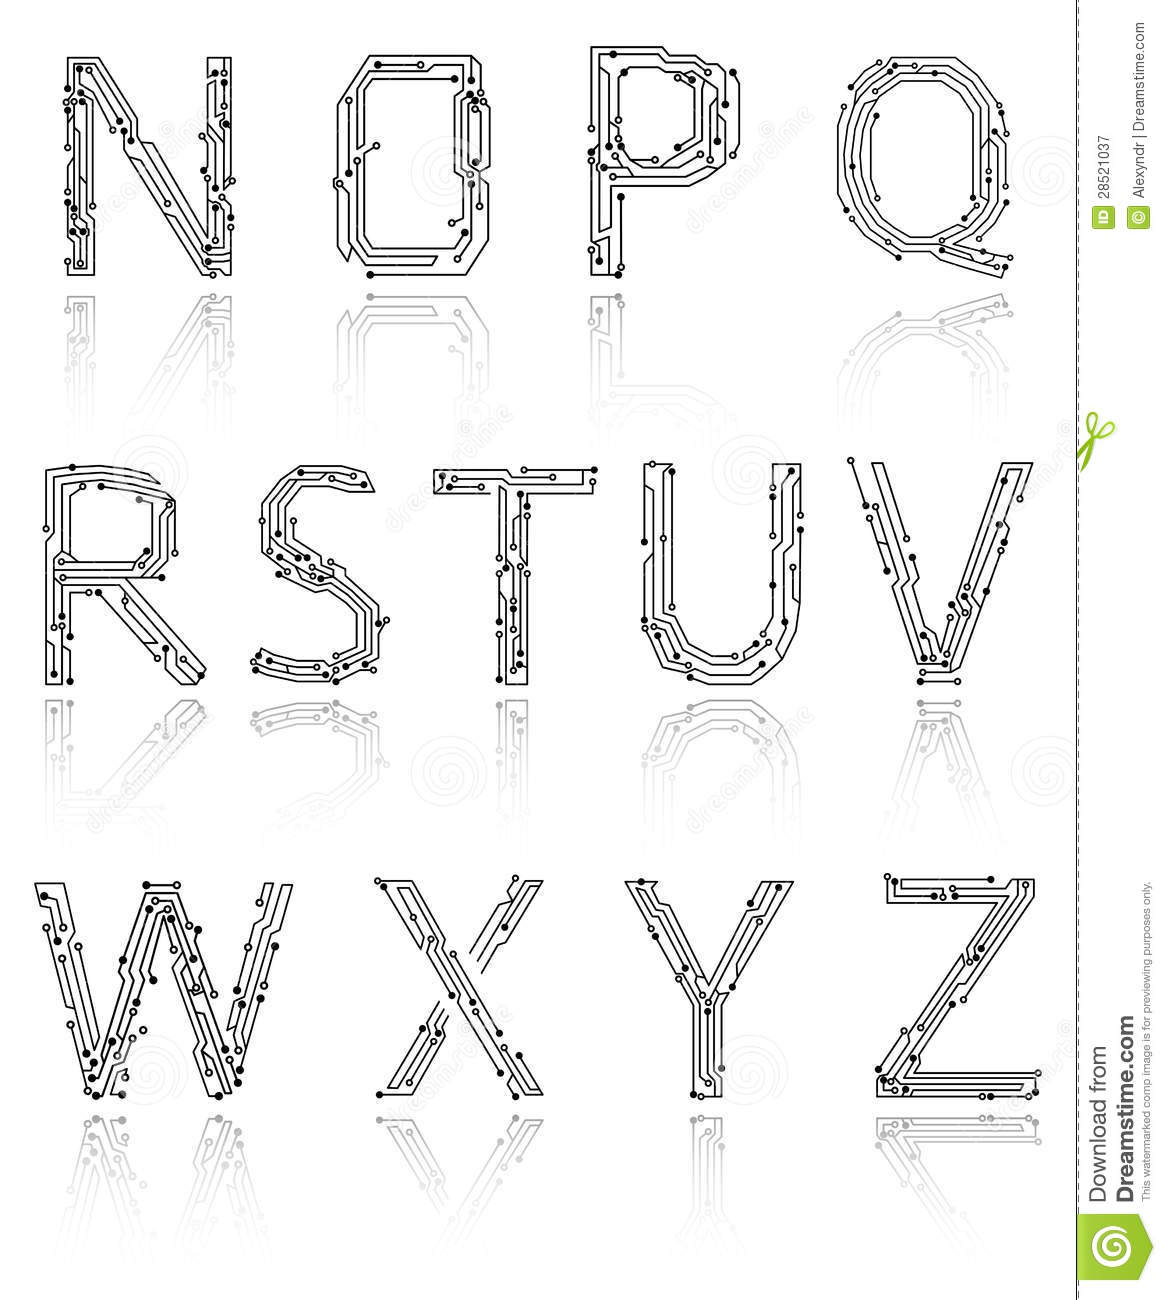 alphabet of printed circuit boards royalty free stock photography